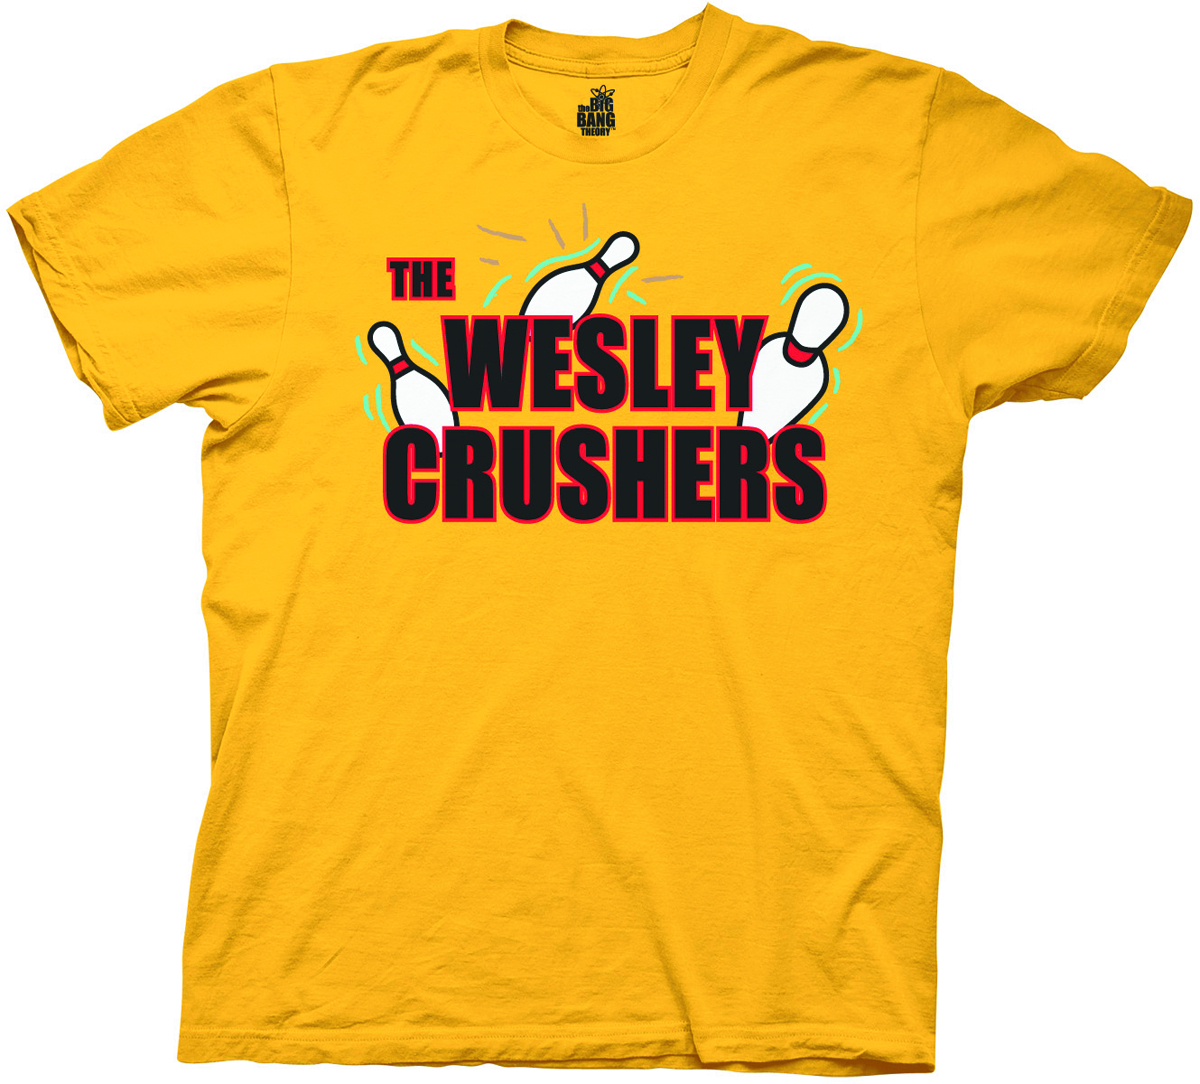 BBT WESLEY CRUSHERS YELLOW T/S XL